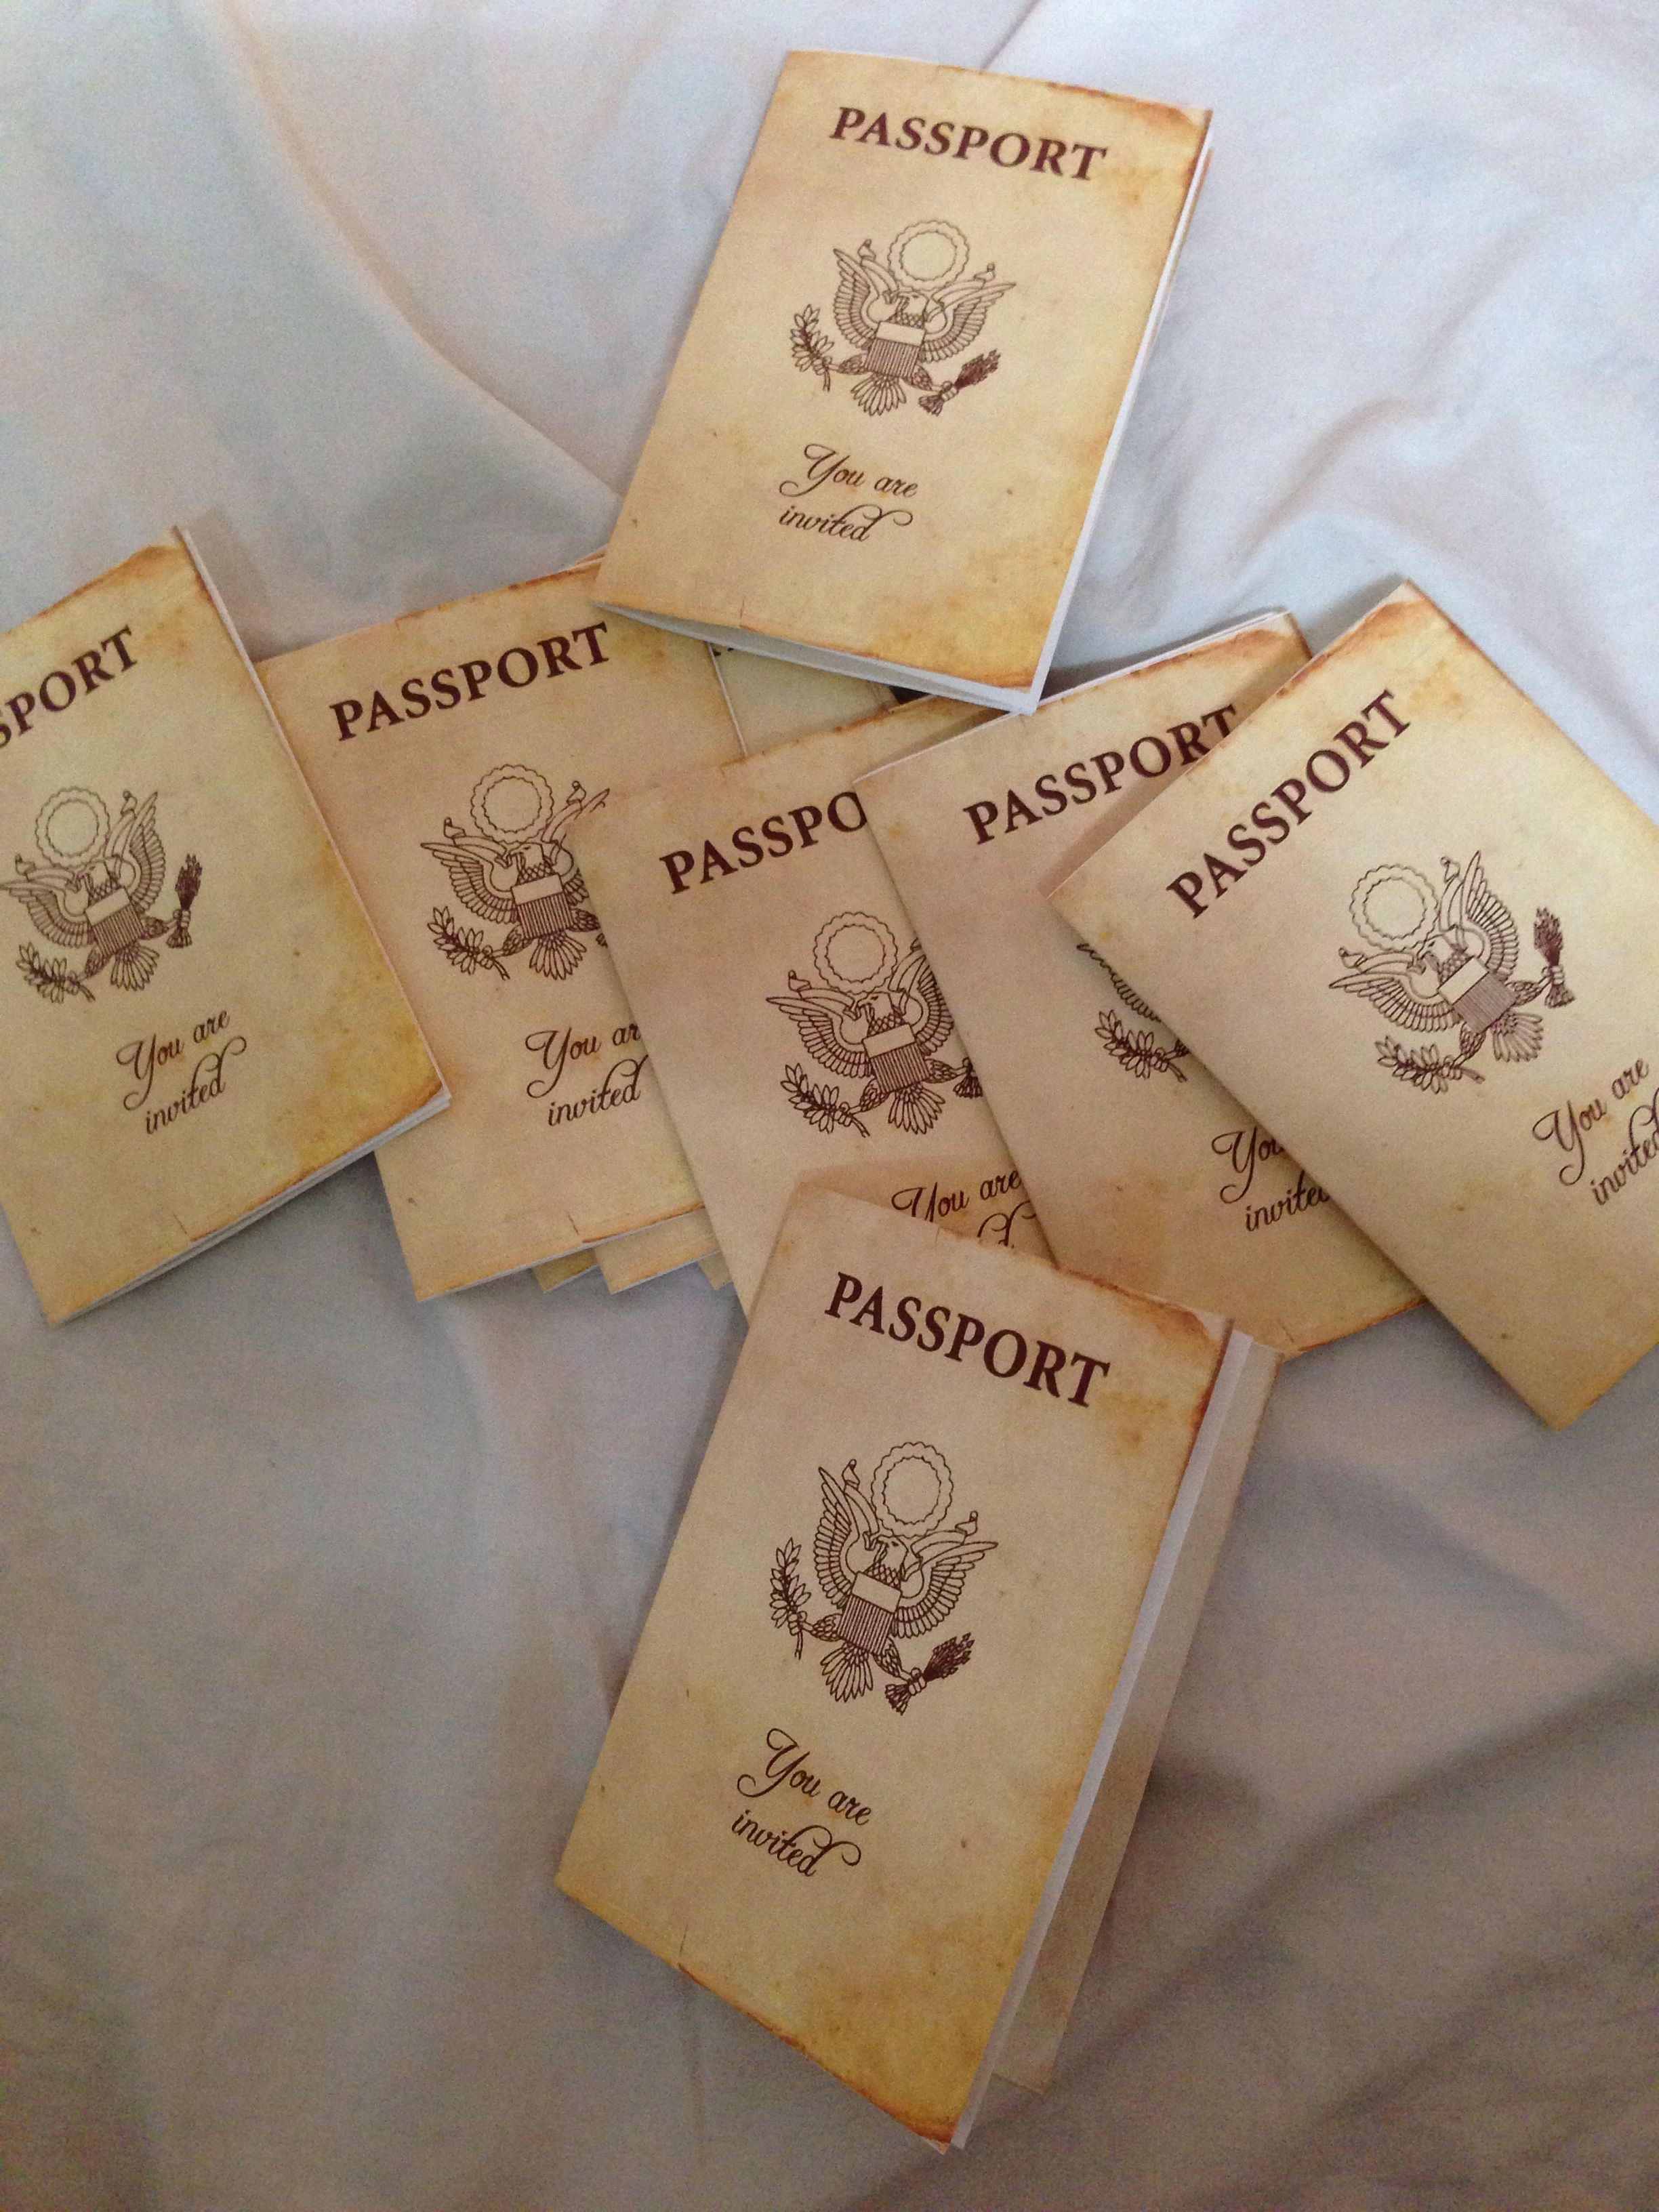 my passport invites for a travel theme party have guests